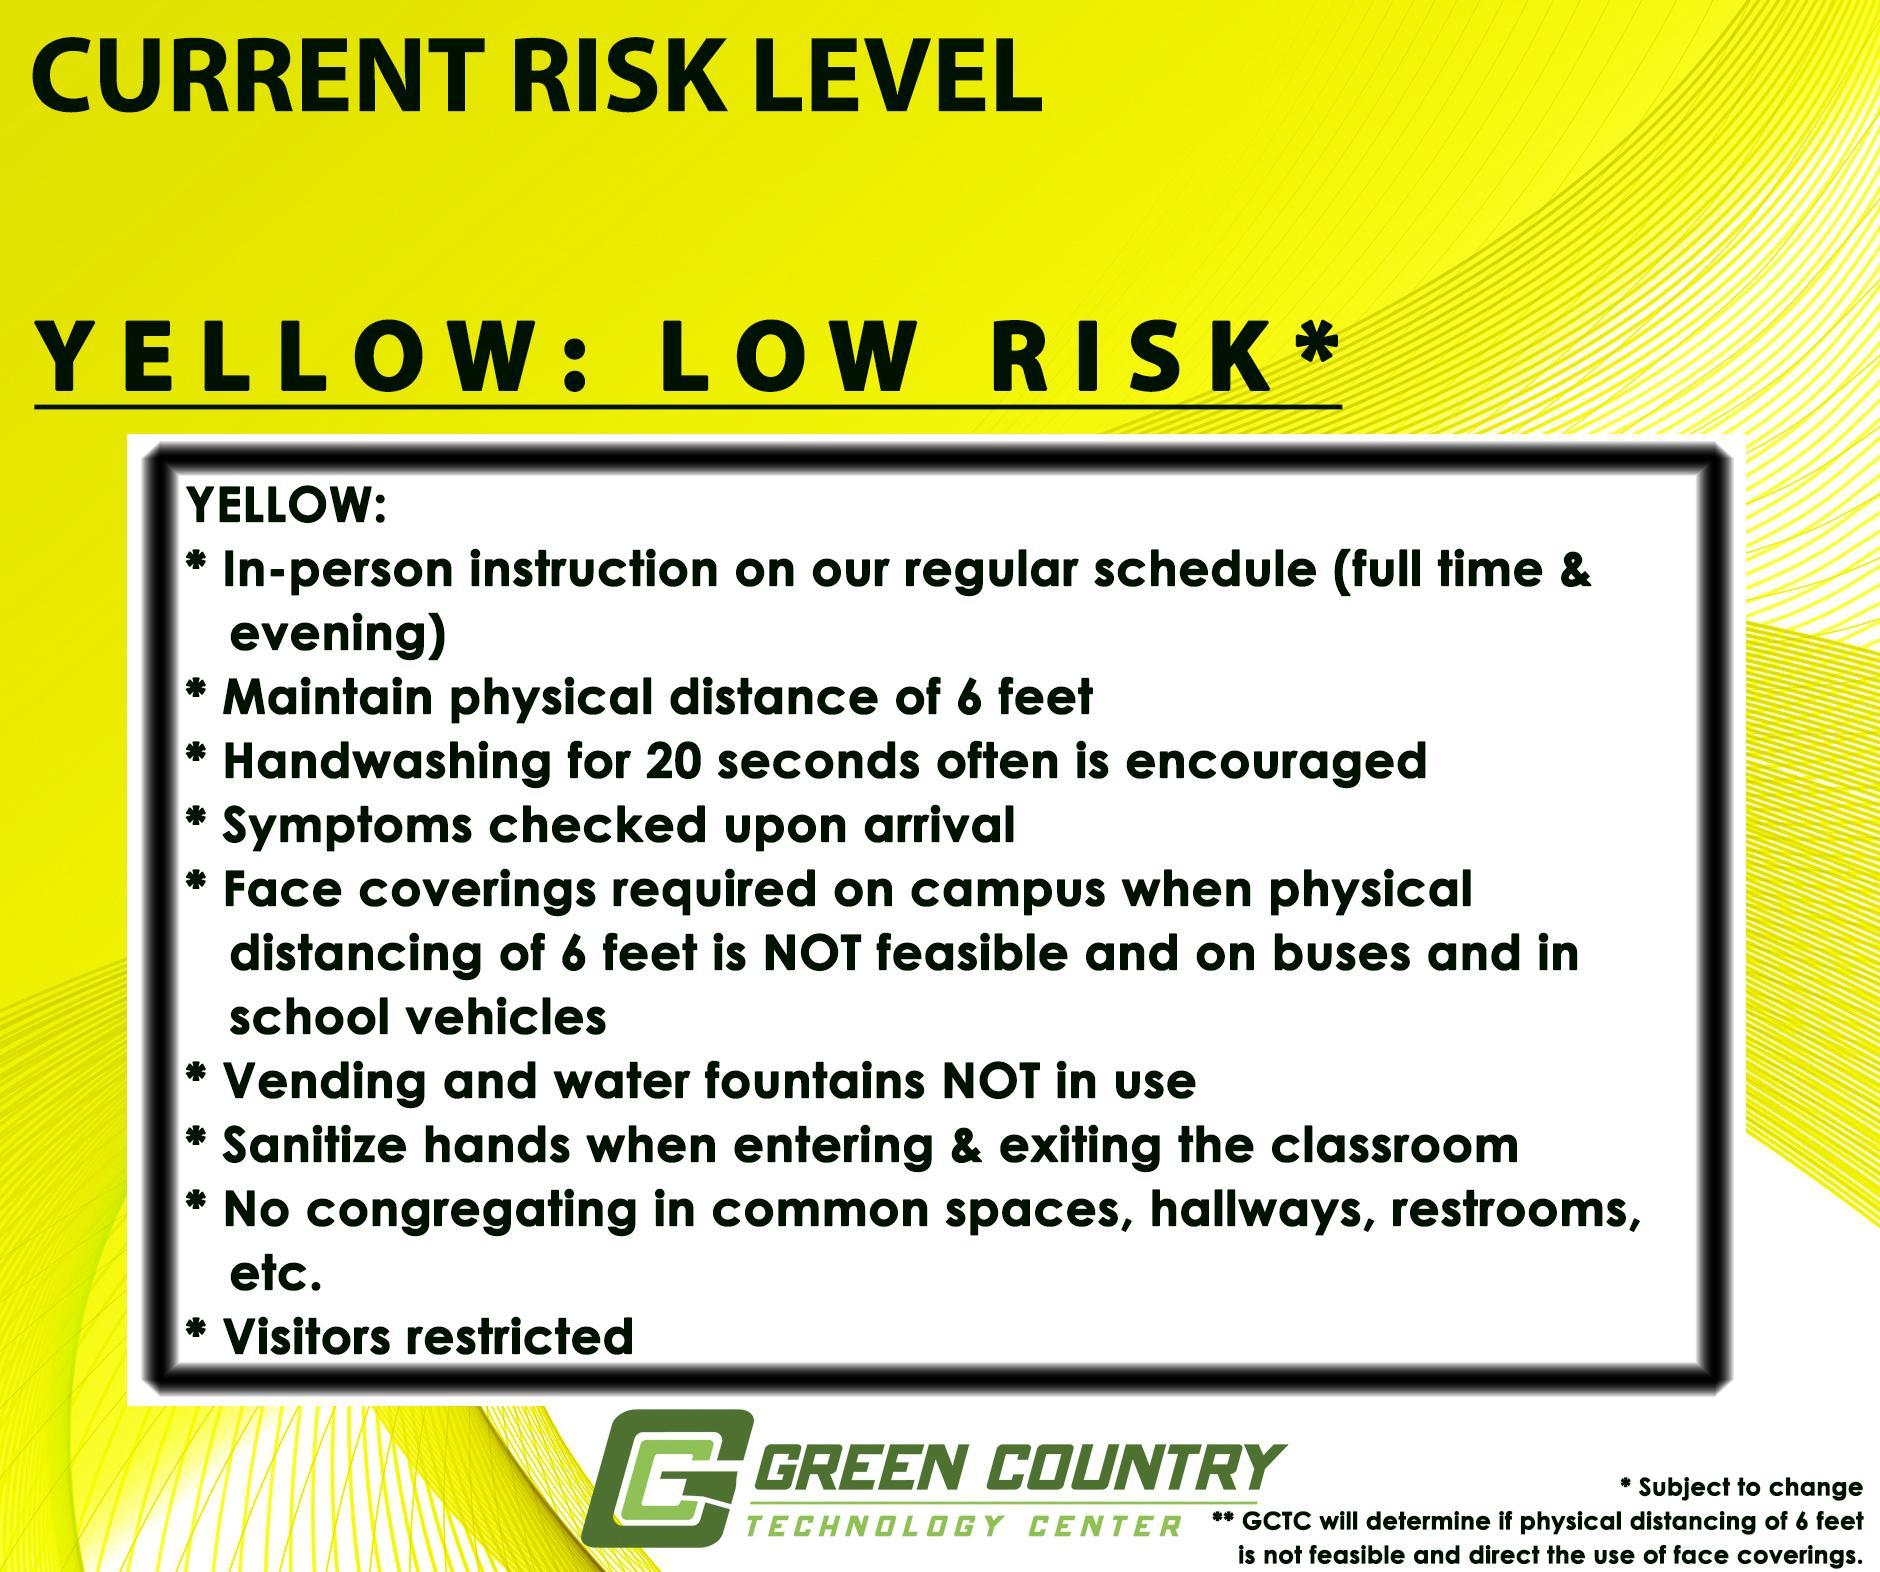 Guidelines for Yellow Category